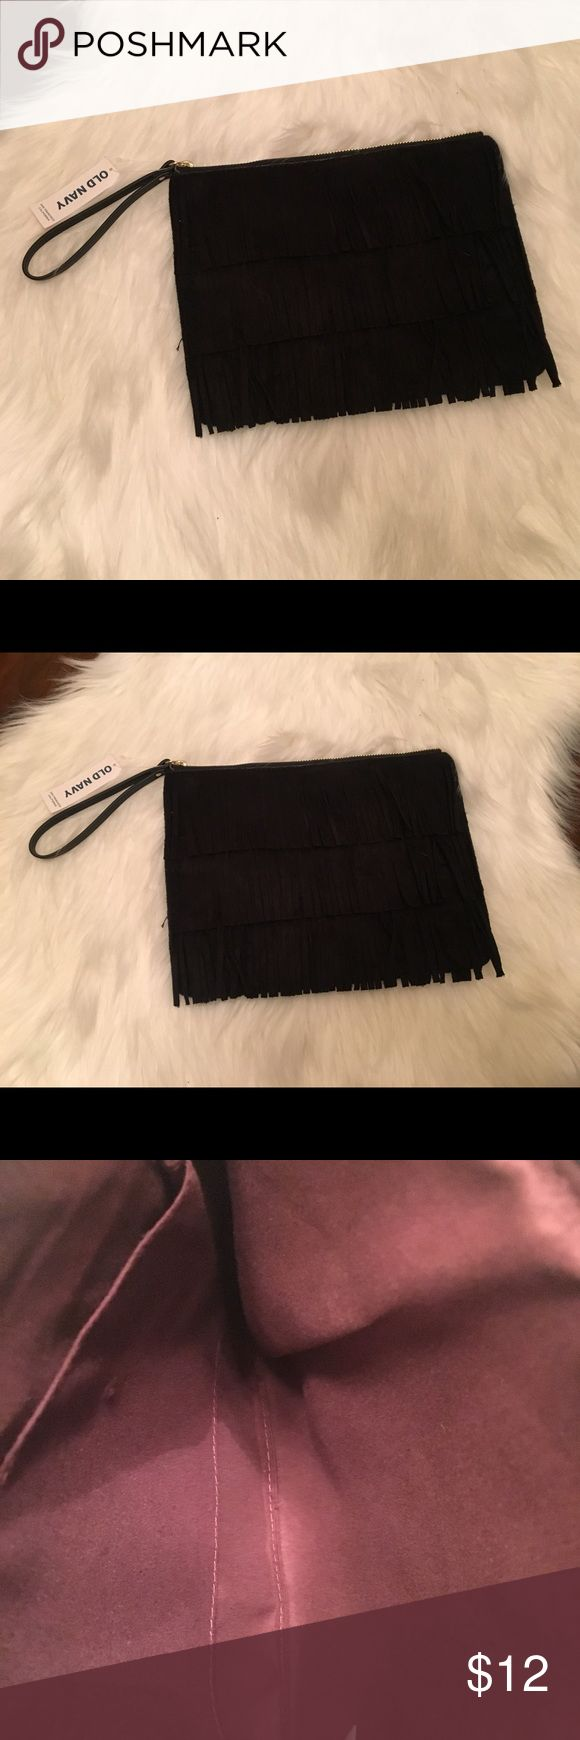 Old Navy Fringe Clutch/Wrislet 🎉SALE TODAY ONLY🎉Super cute! Black brand new with tags! Old Navy Bags Clutches & Wristlets